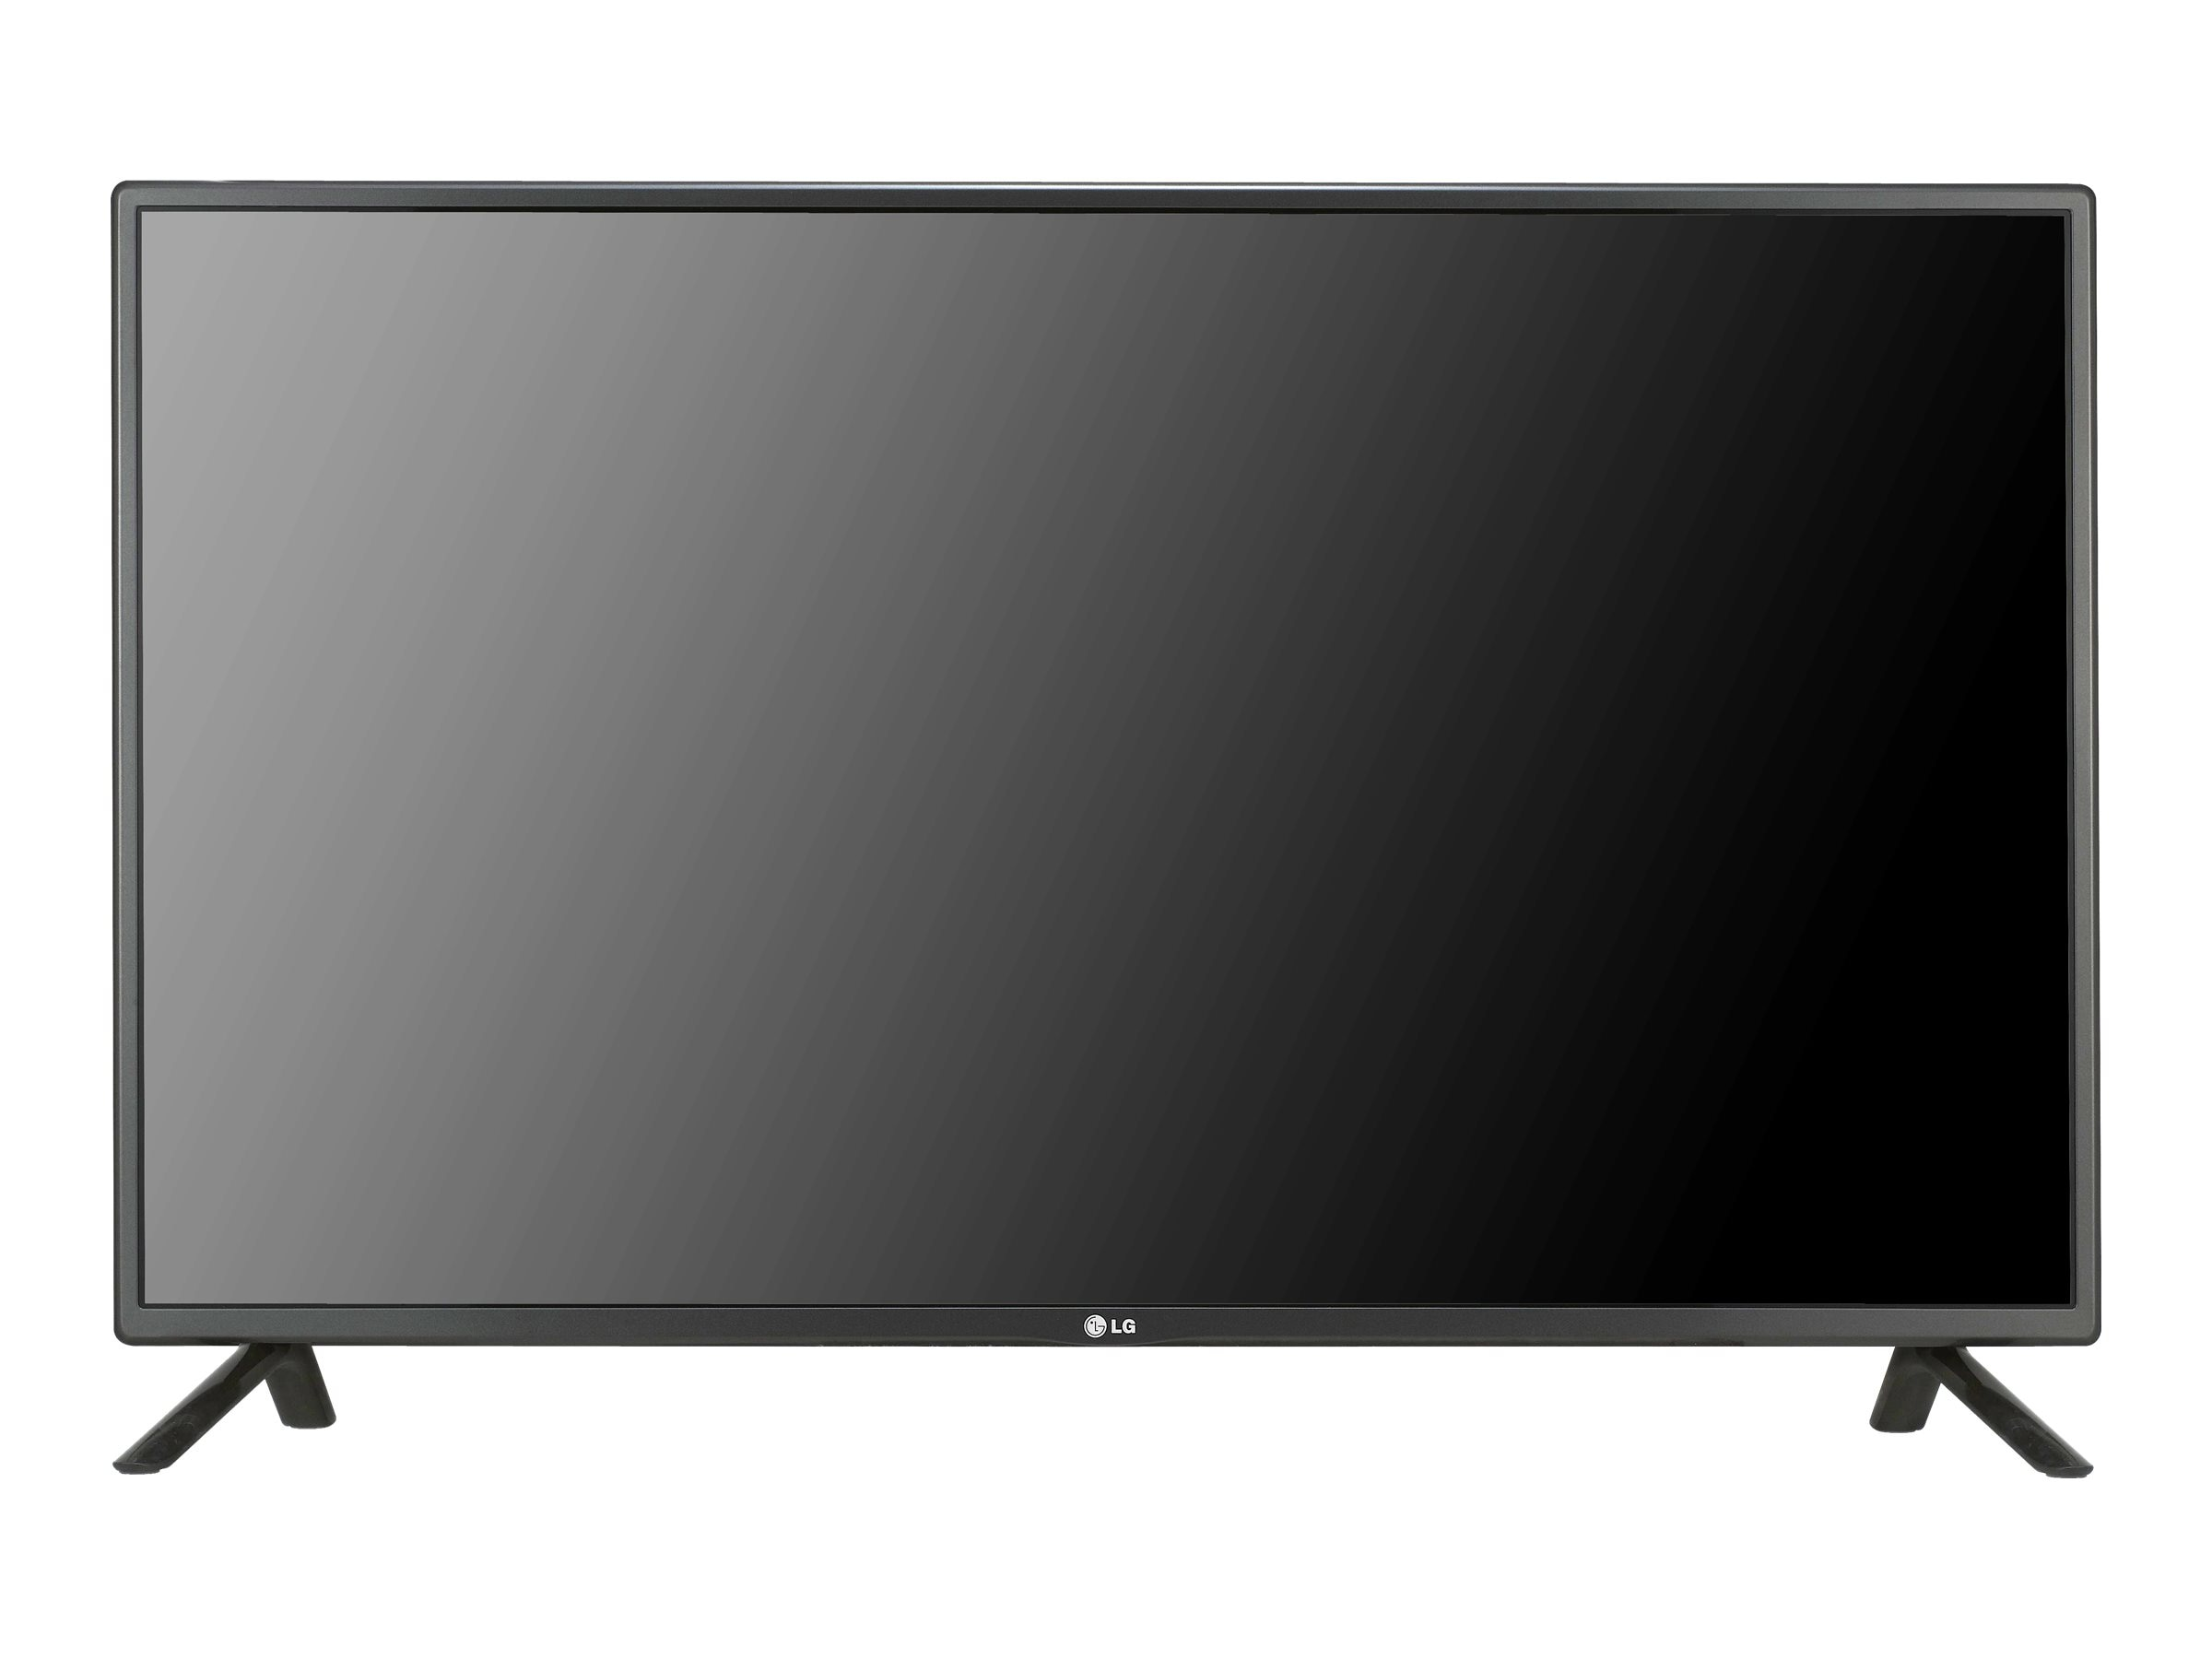 LG 55 LS35A-5B Full HD LED-LCD Display, Black, 55LS35A-5B, 17862096, Monitors - Large-Format LED-LCD